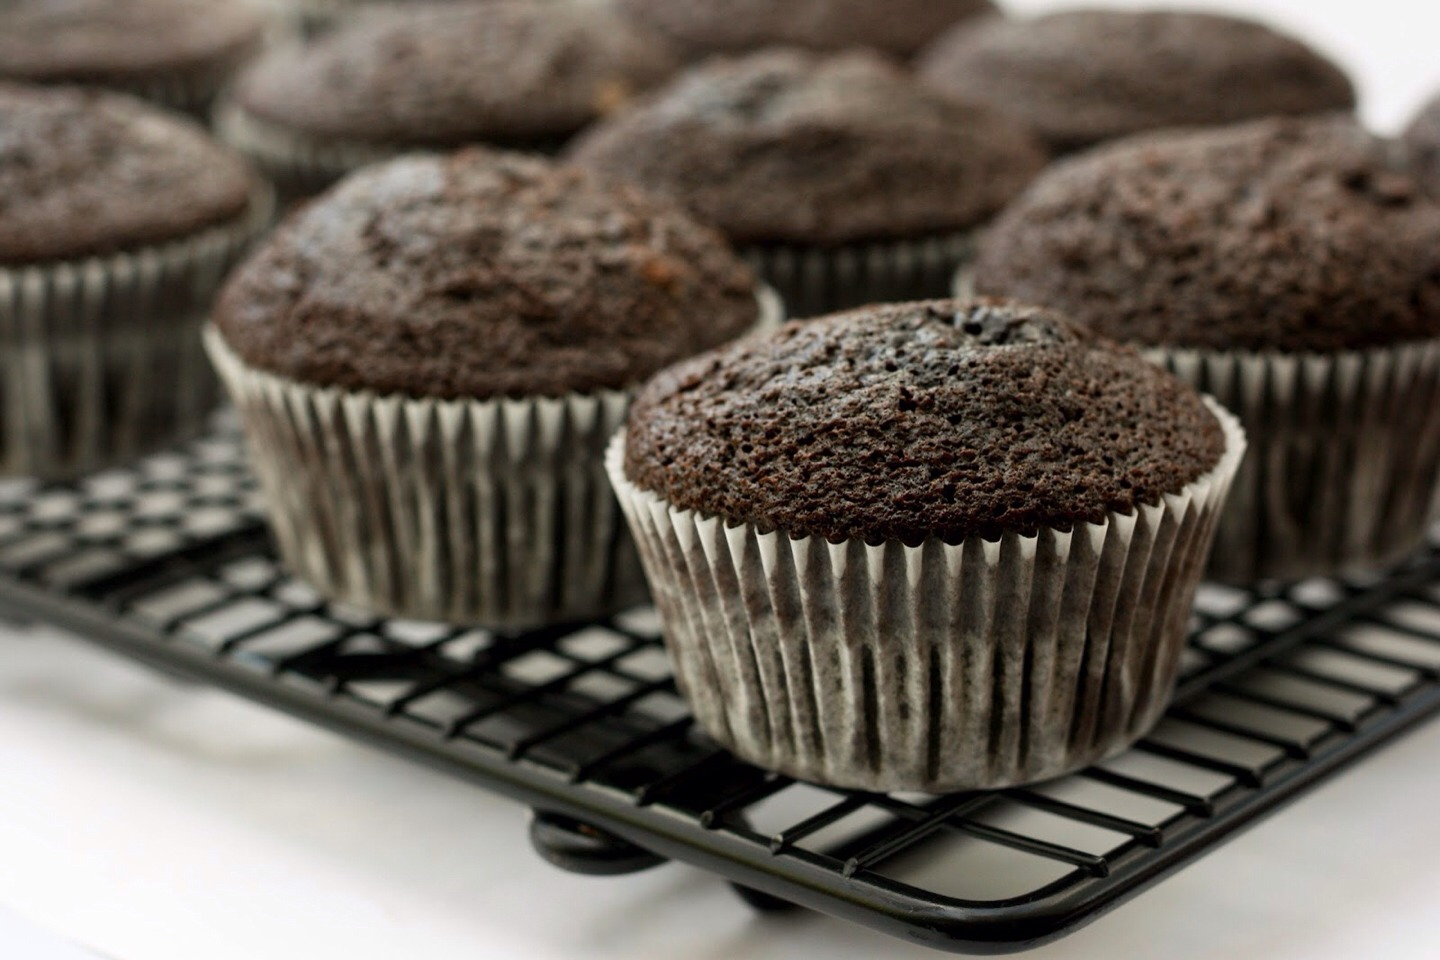 Buy choc cupcake batter and pour into cupcake tin half way, add a chocolate truffle in middle and rest of cupcake batter and bake, you will have delicious melt in the middle cupcakes.